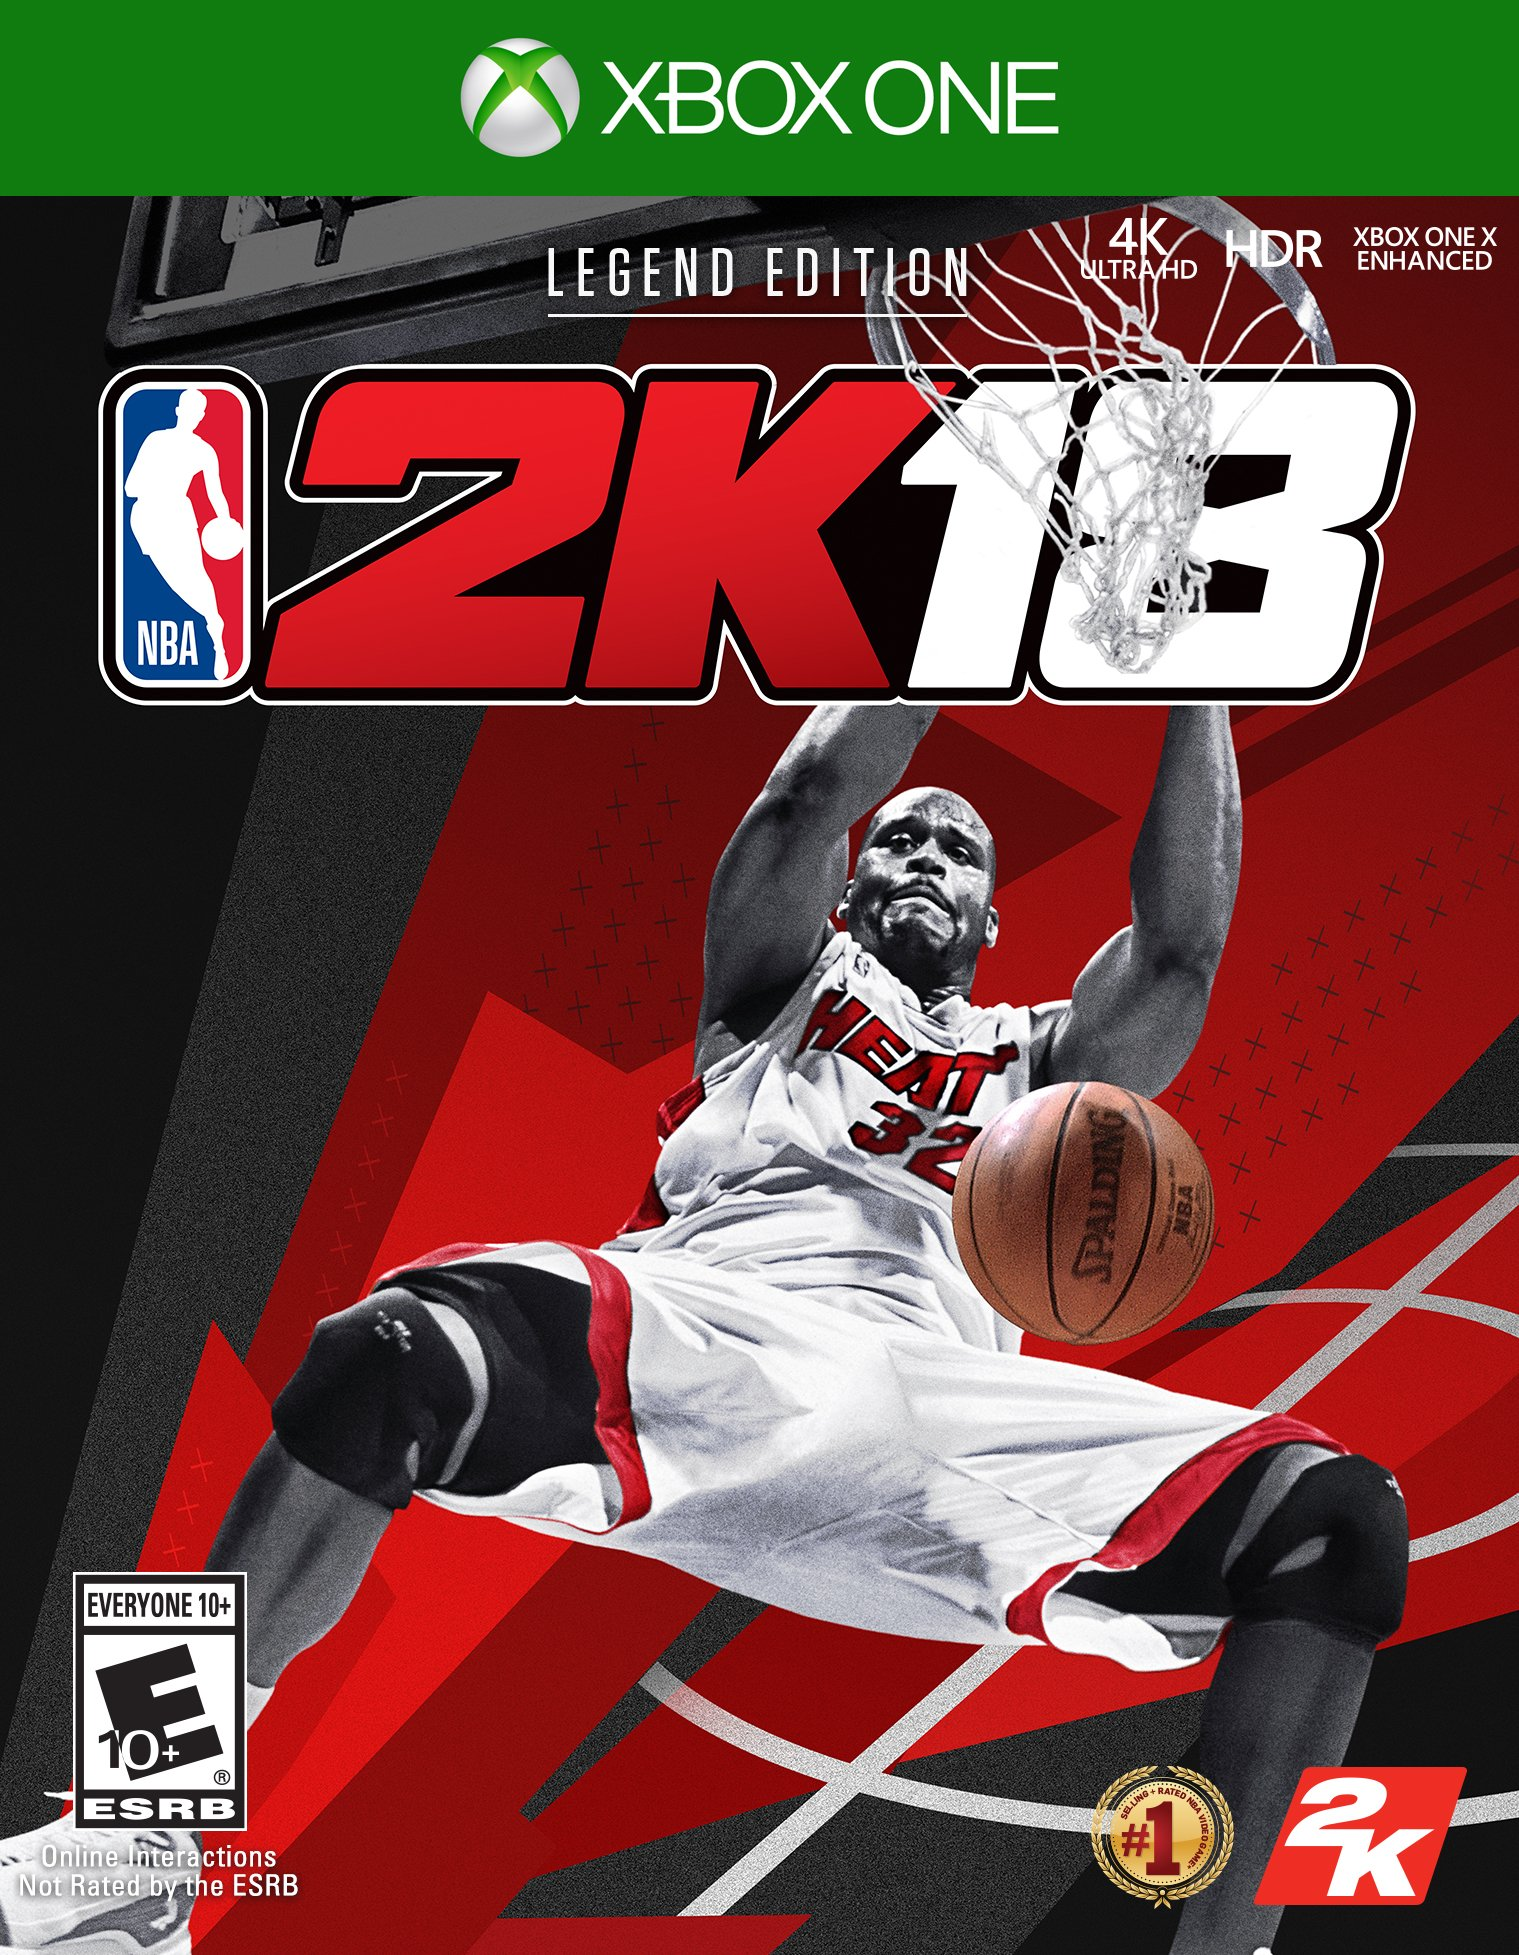 27. NBA 2K18 Legend Edition Gold for XBOX ONE